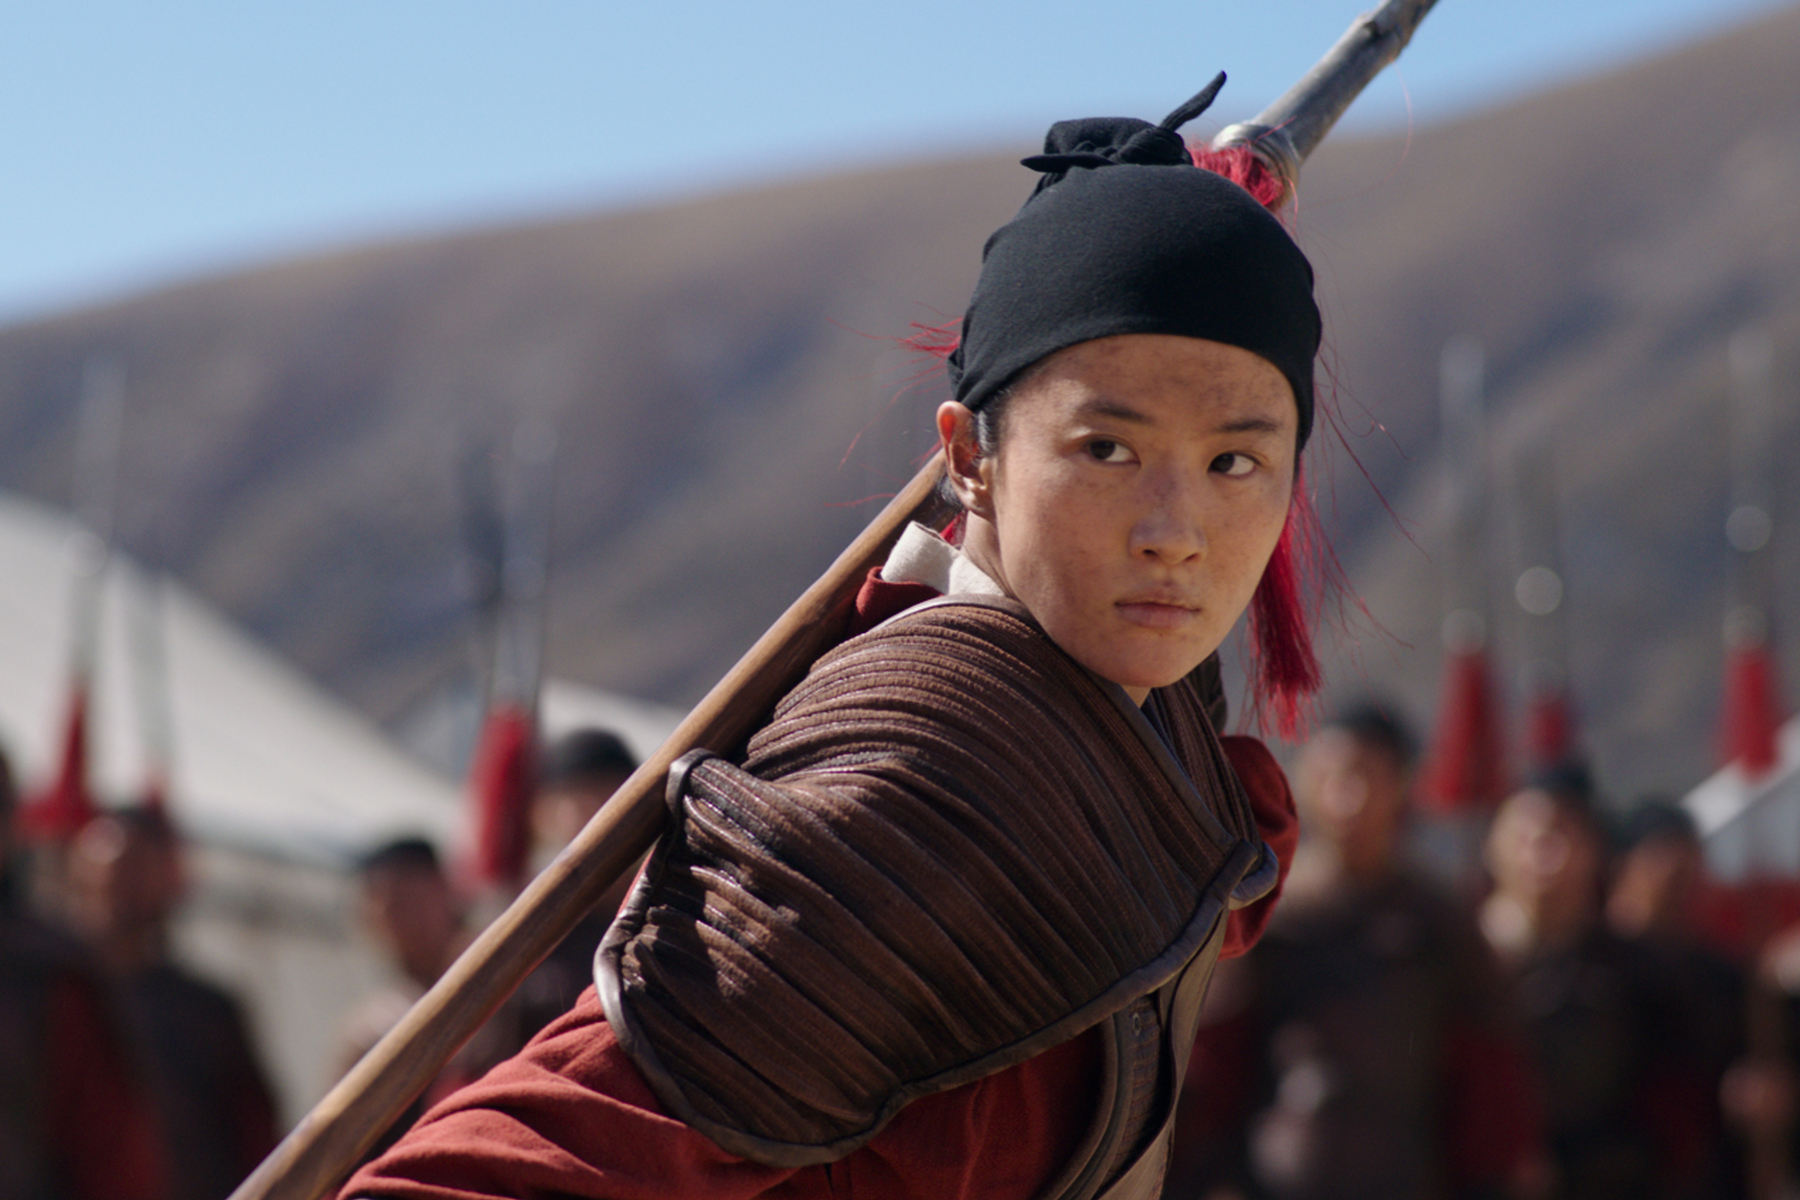 Mulan' Review: Disney's Live-Action Remake Is Shrewd But Not Sharp - Rolling Stone